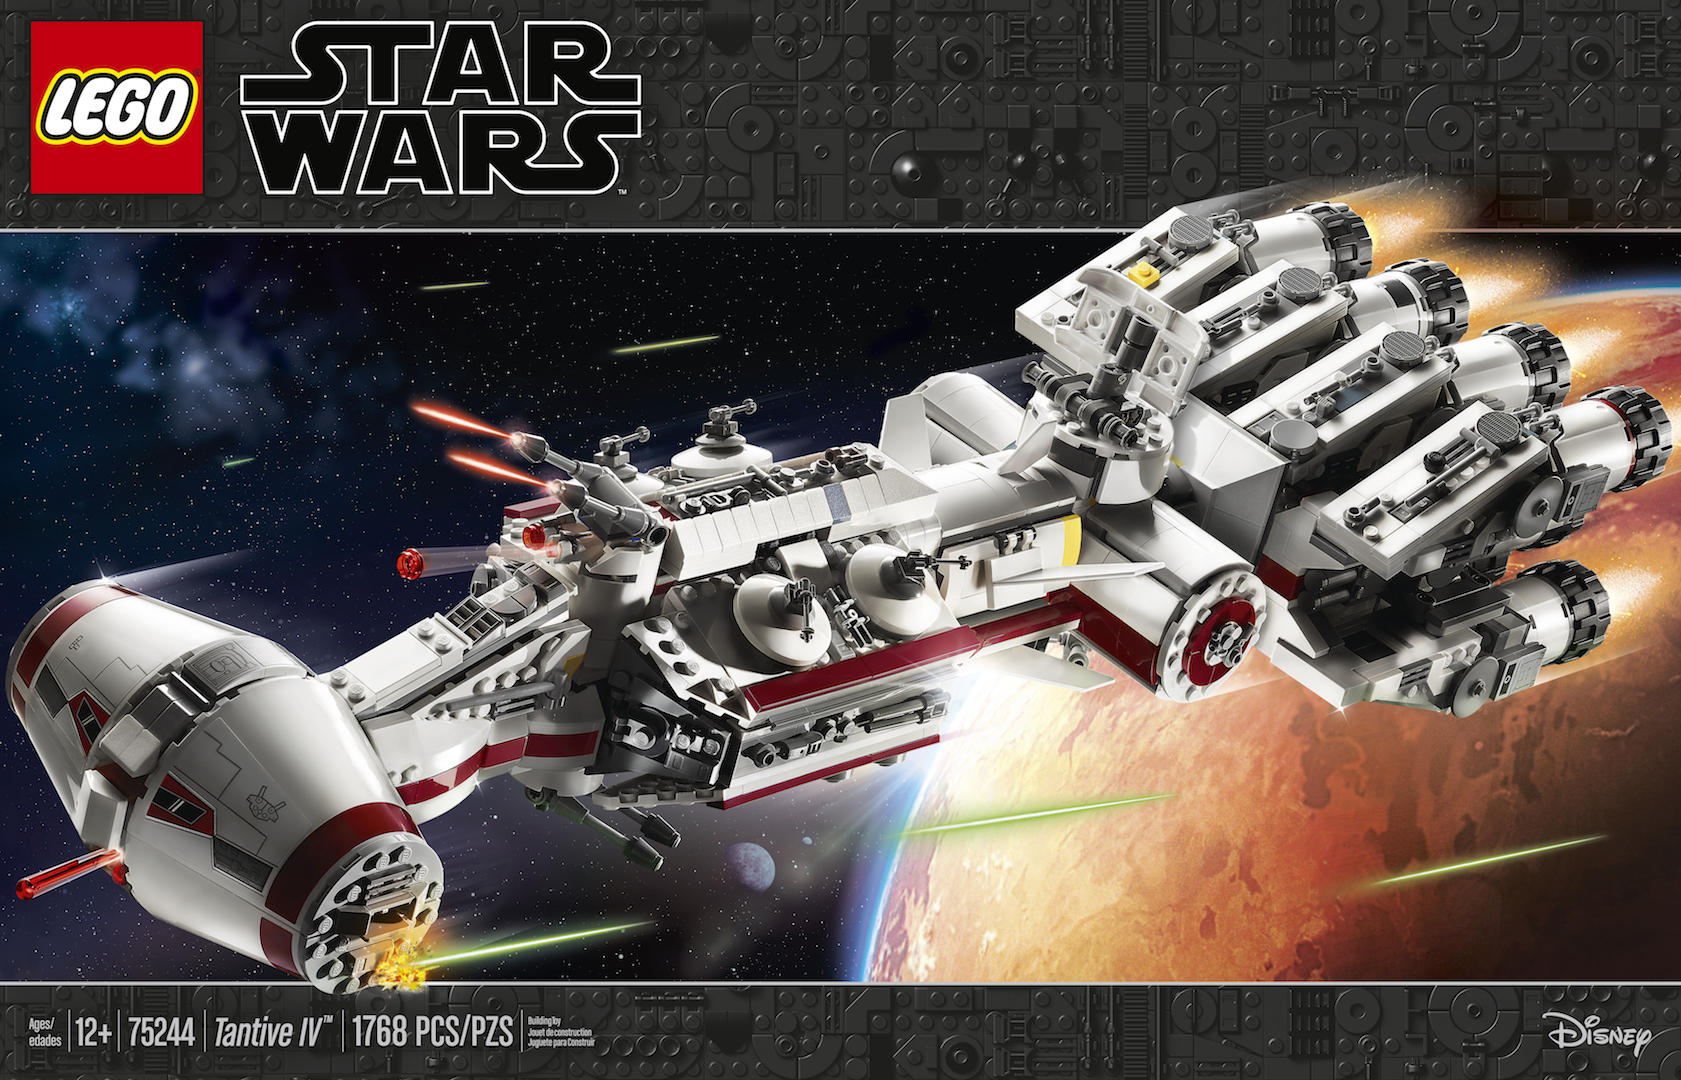 Star Wars Celebration First Look: LEGO Star Wars Rebel Tantive IV ship